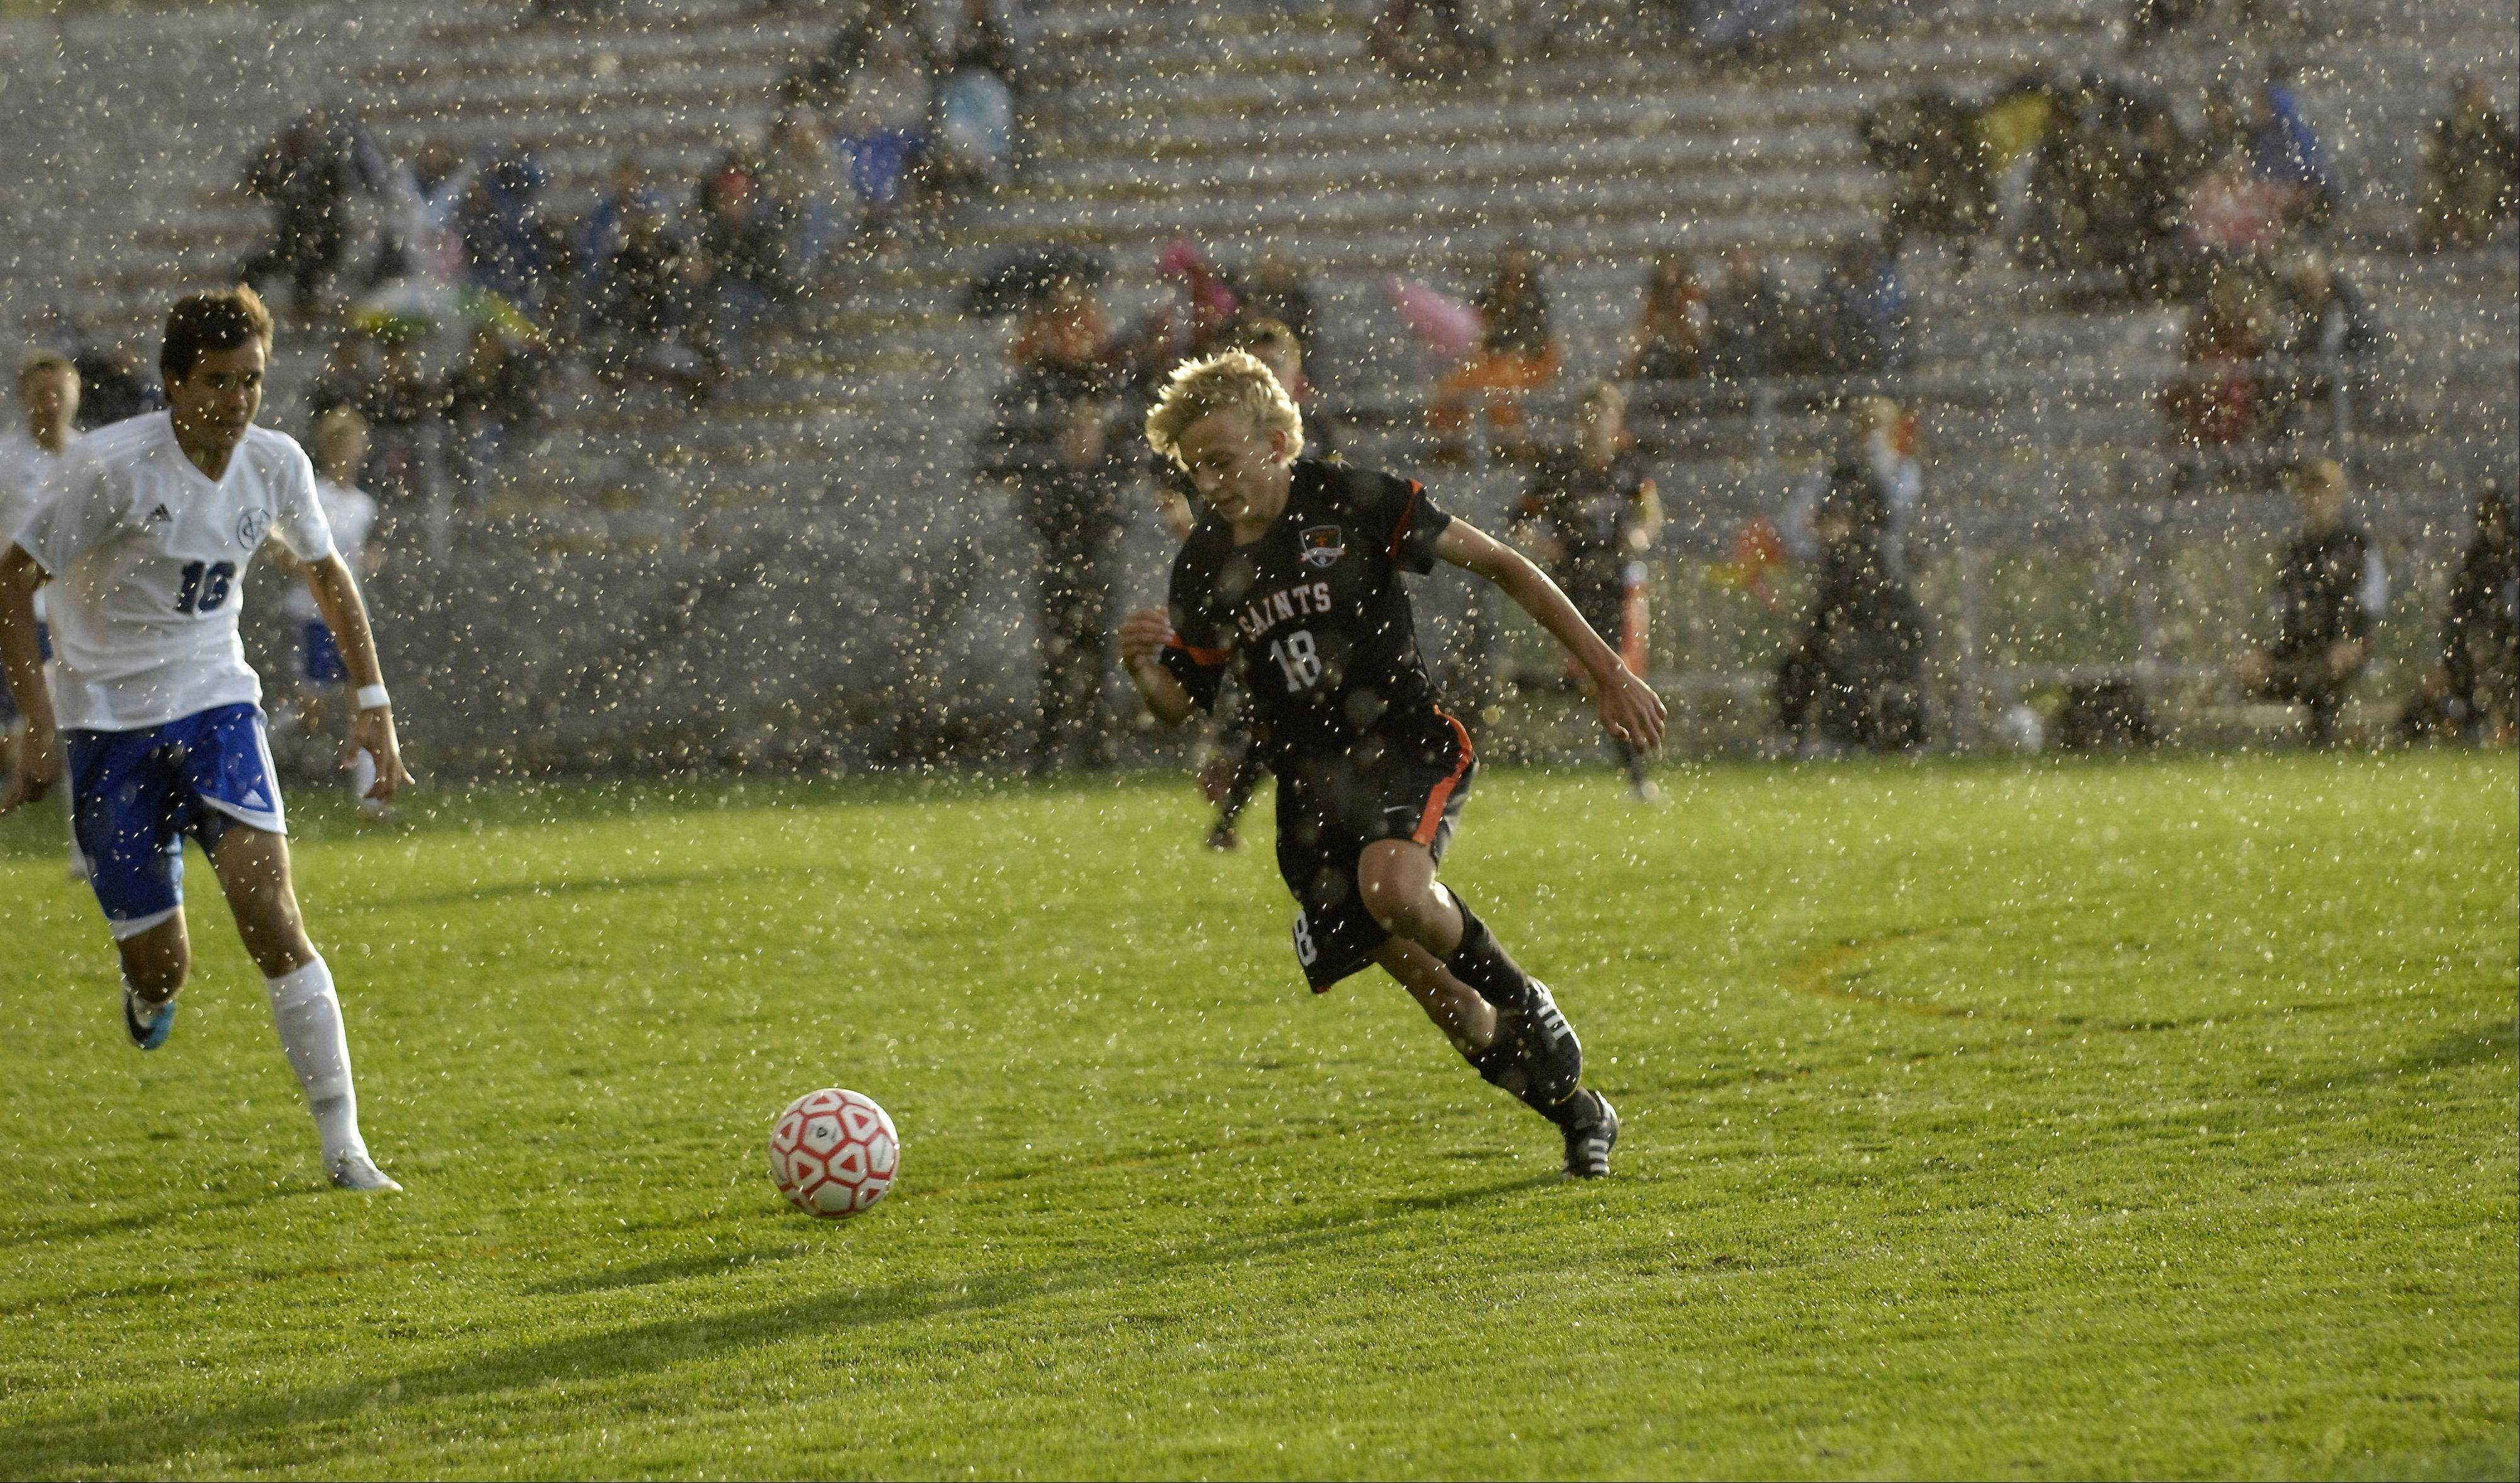 A heavy rain starts to fall as St. Charles East's Kevin Heinrich dribbles the ball through the midfield during a 2011 game at Batavia High School. A proposal to install artificial turf has been made.